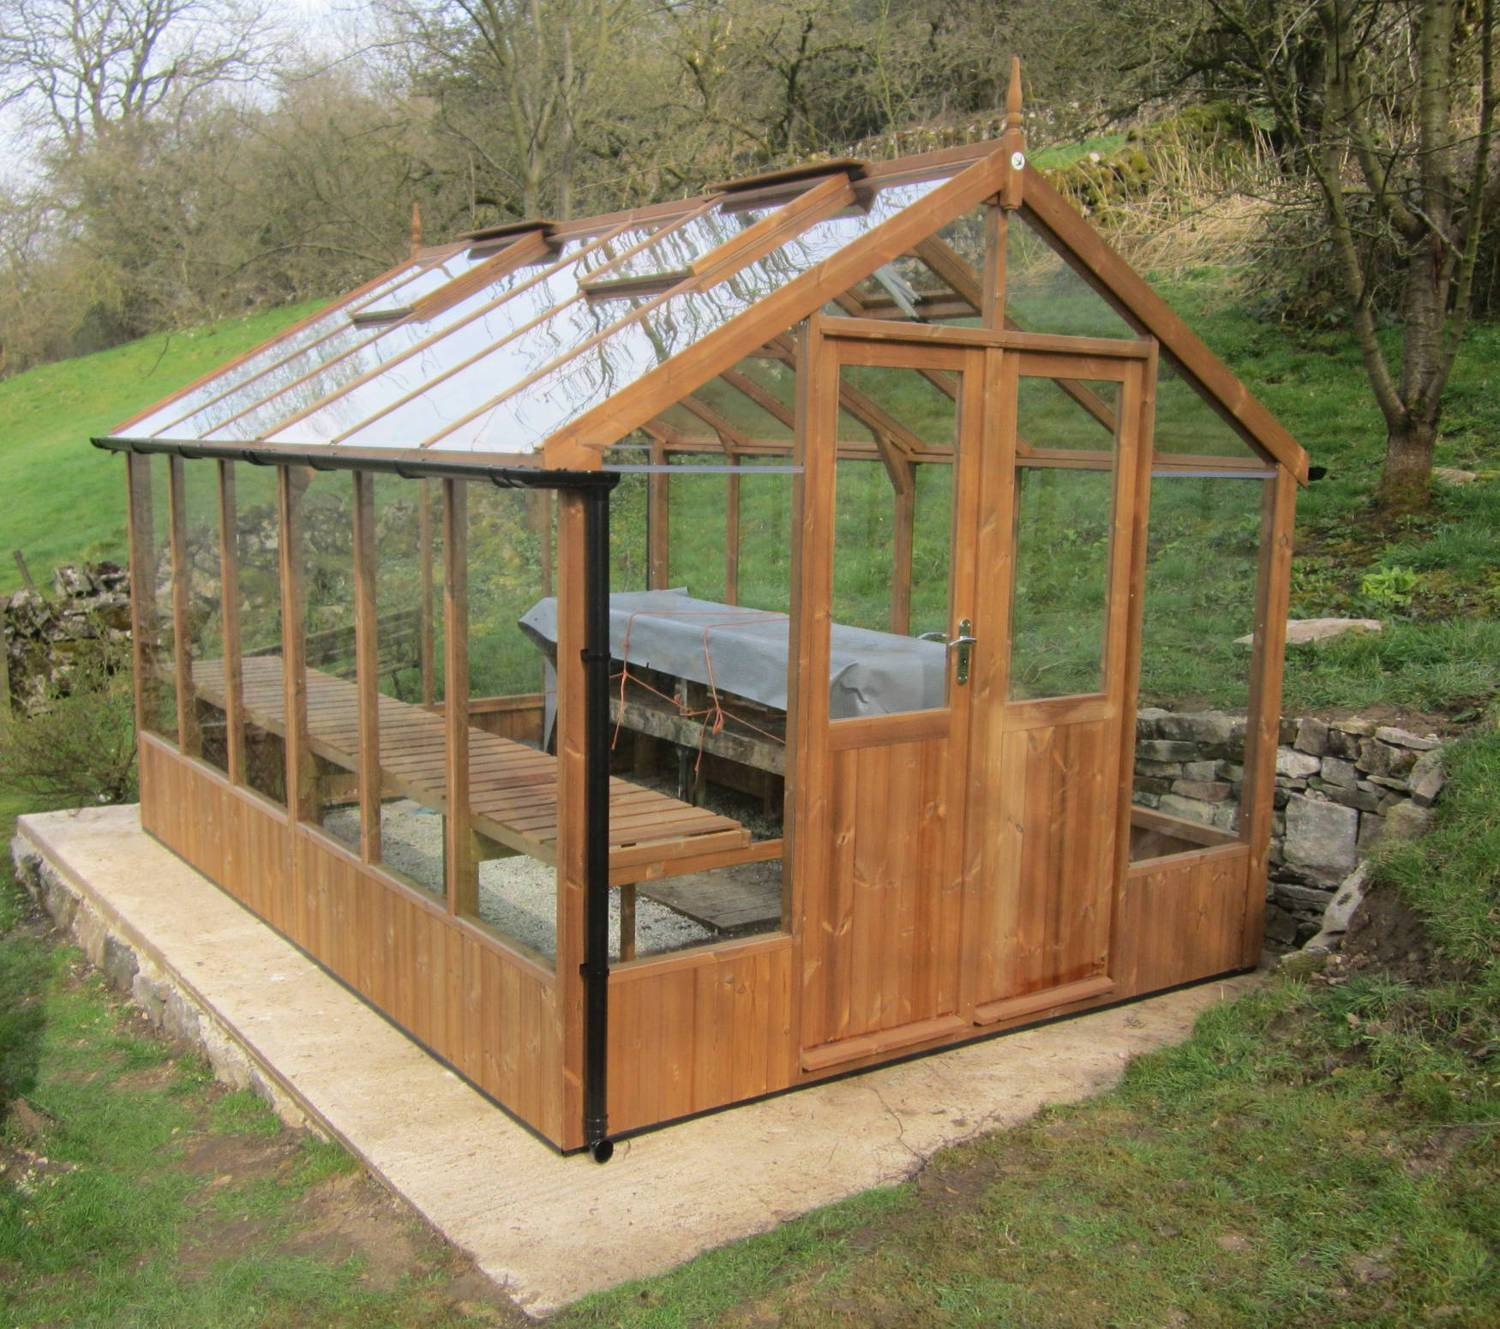 Swallow Raven 8x8 Wooden Greenhouse - Greenhouse Stores